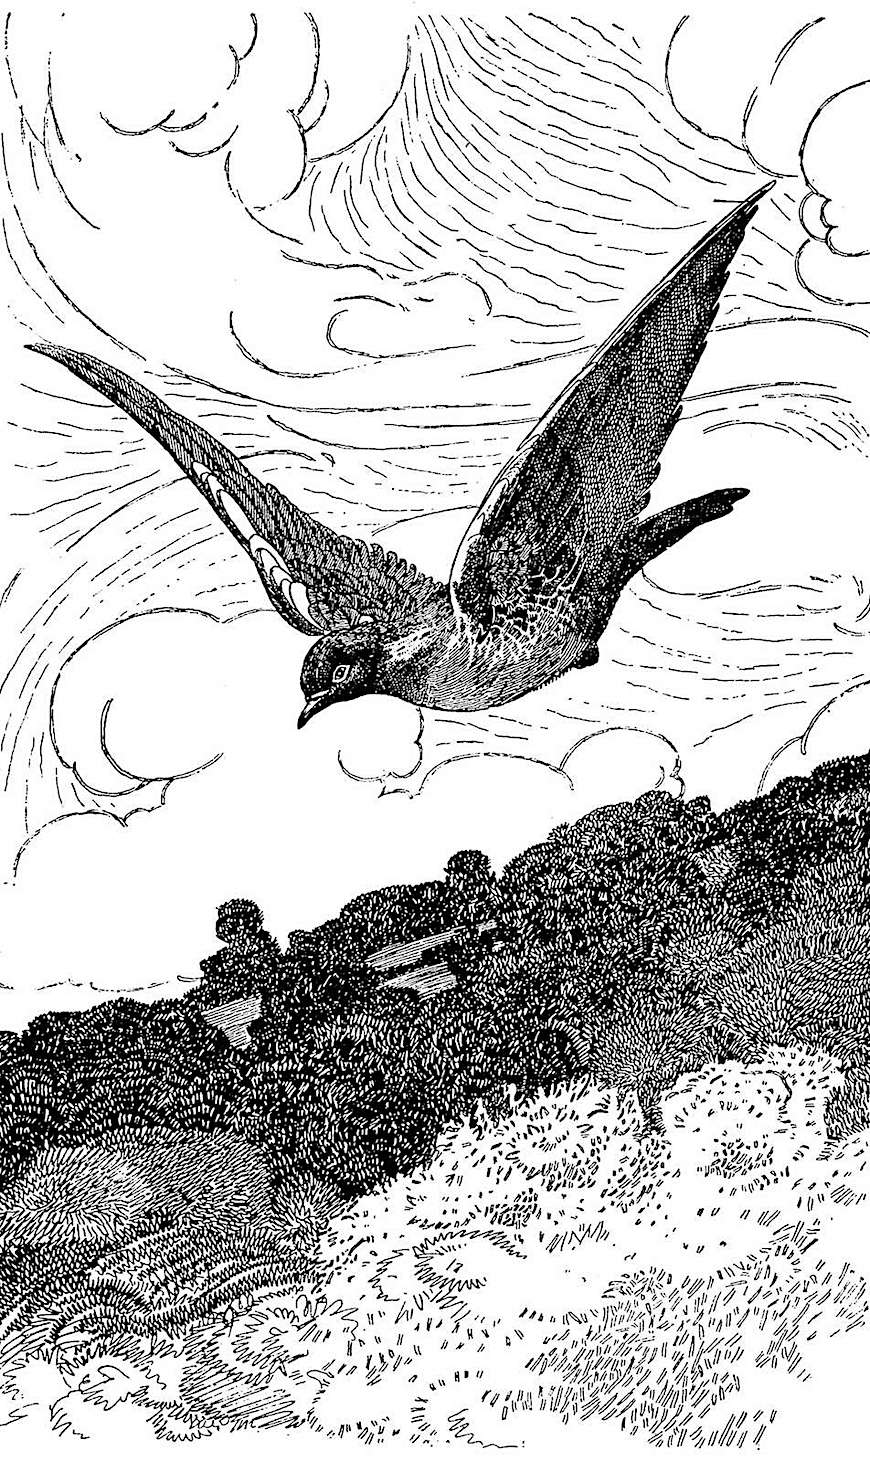 a Charles Robinson pen and ink illustration of a flying bird